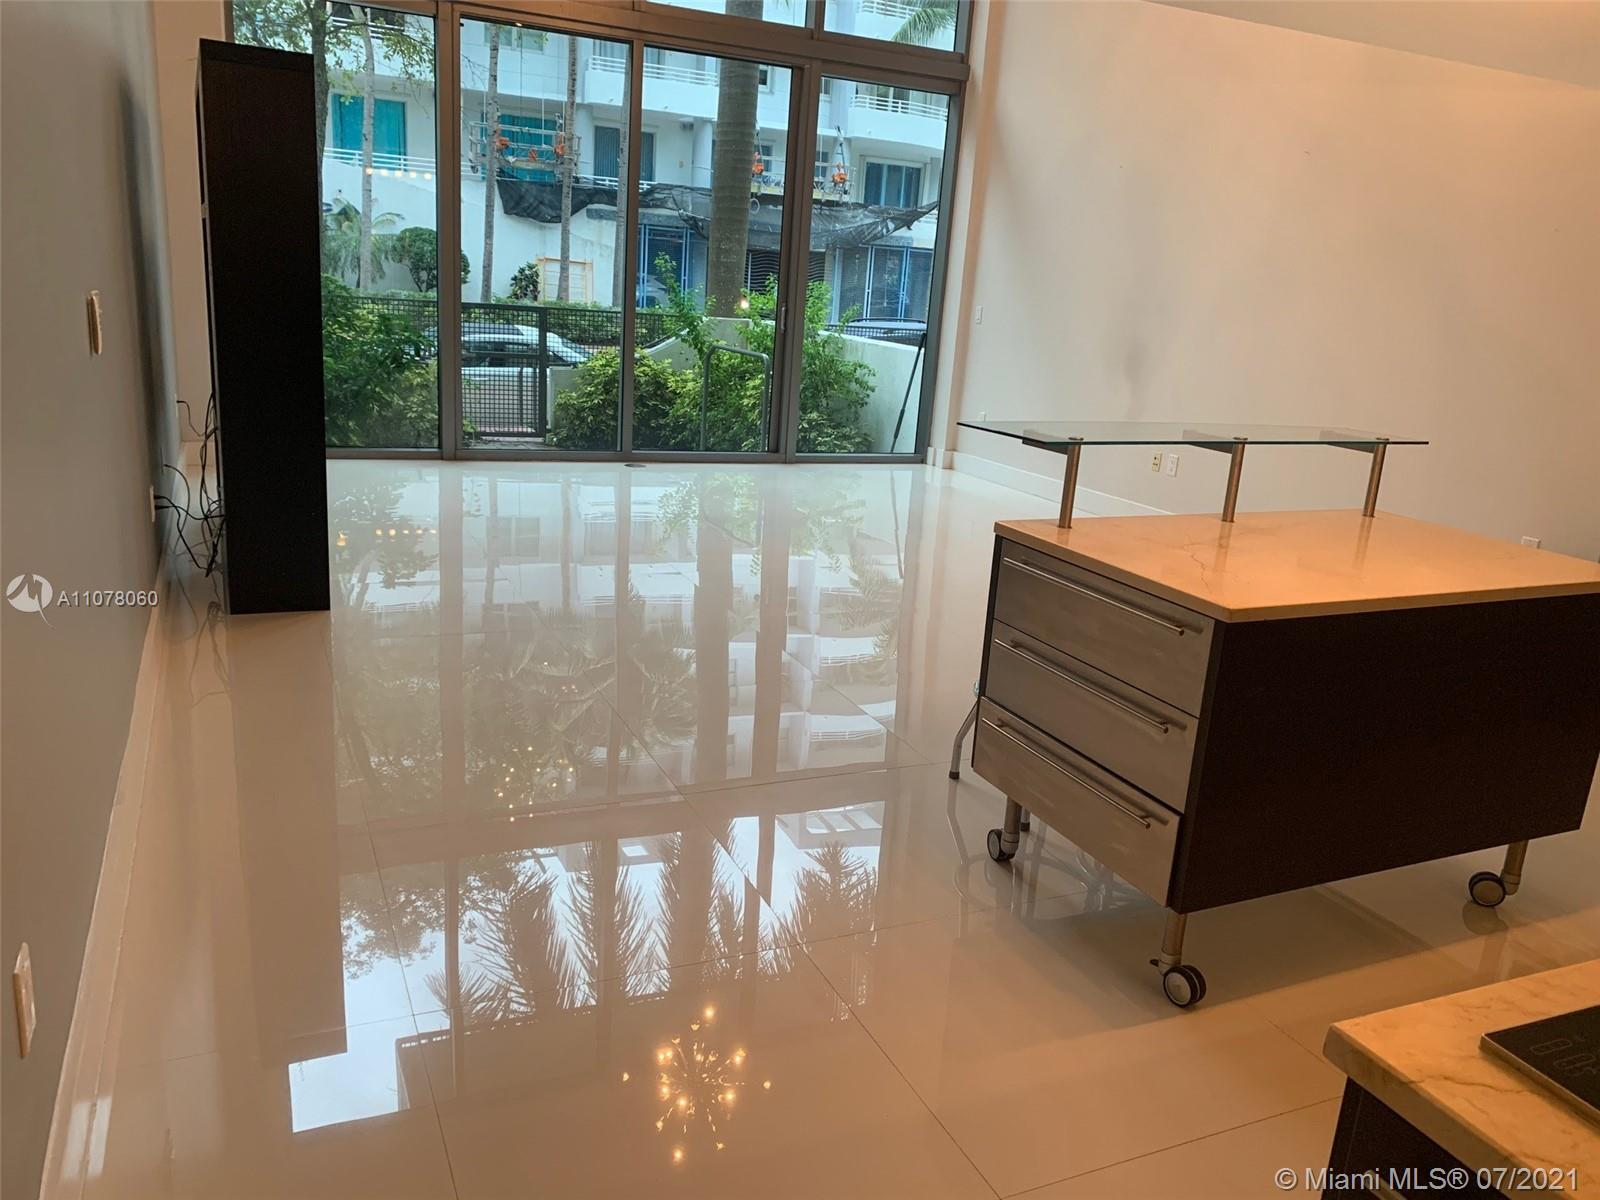 Spacious apartment with double ceiling at living room located in the heart of Miami Beach. 1700 Sqf